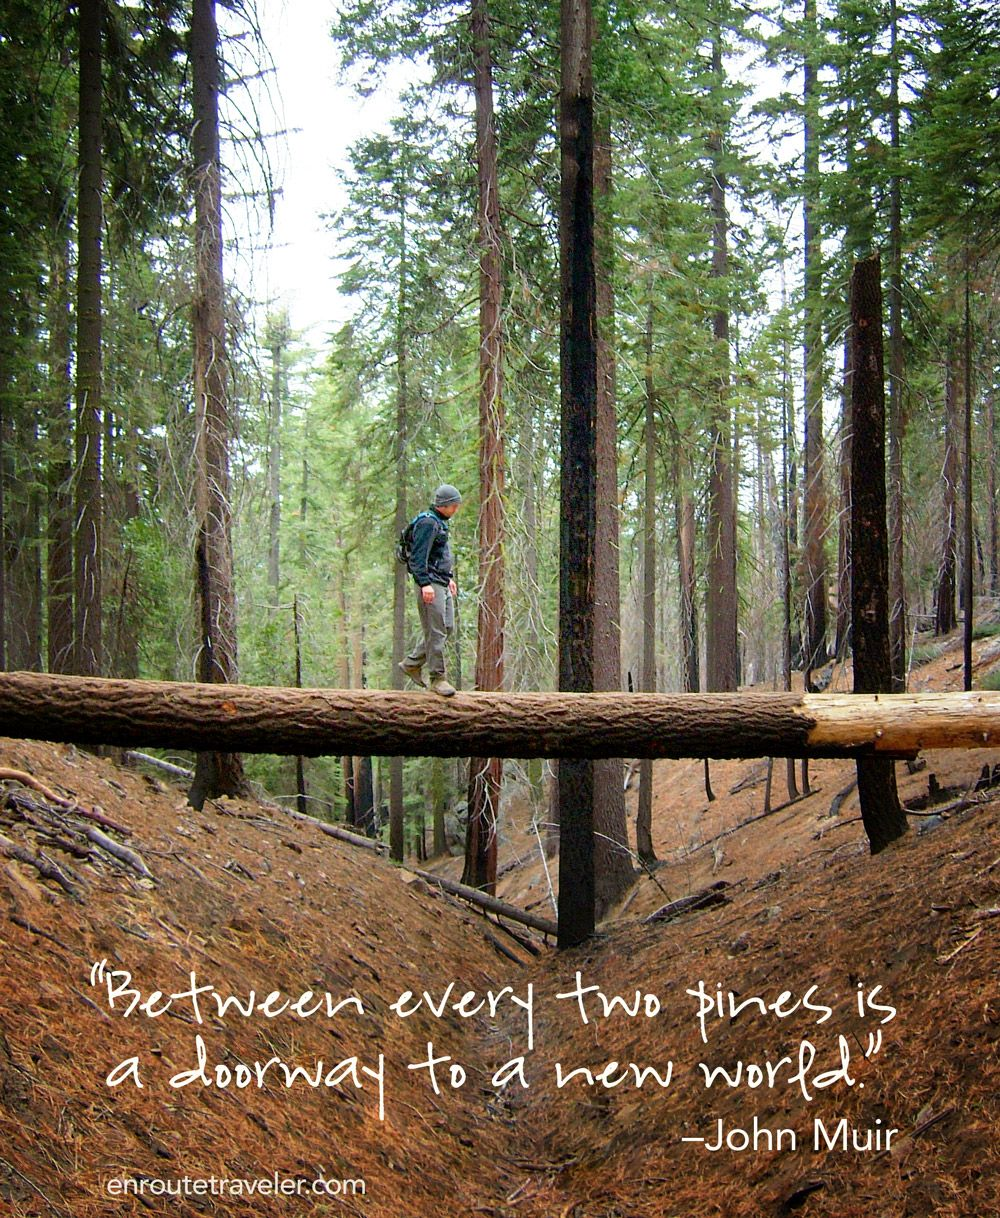 """""""Between every two pines is a doorway to a new world."""" –John Muir"""